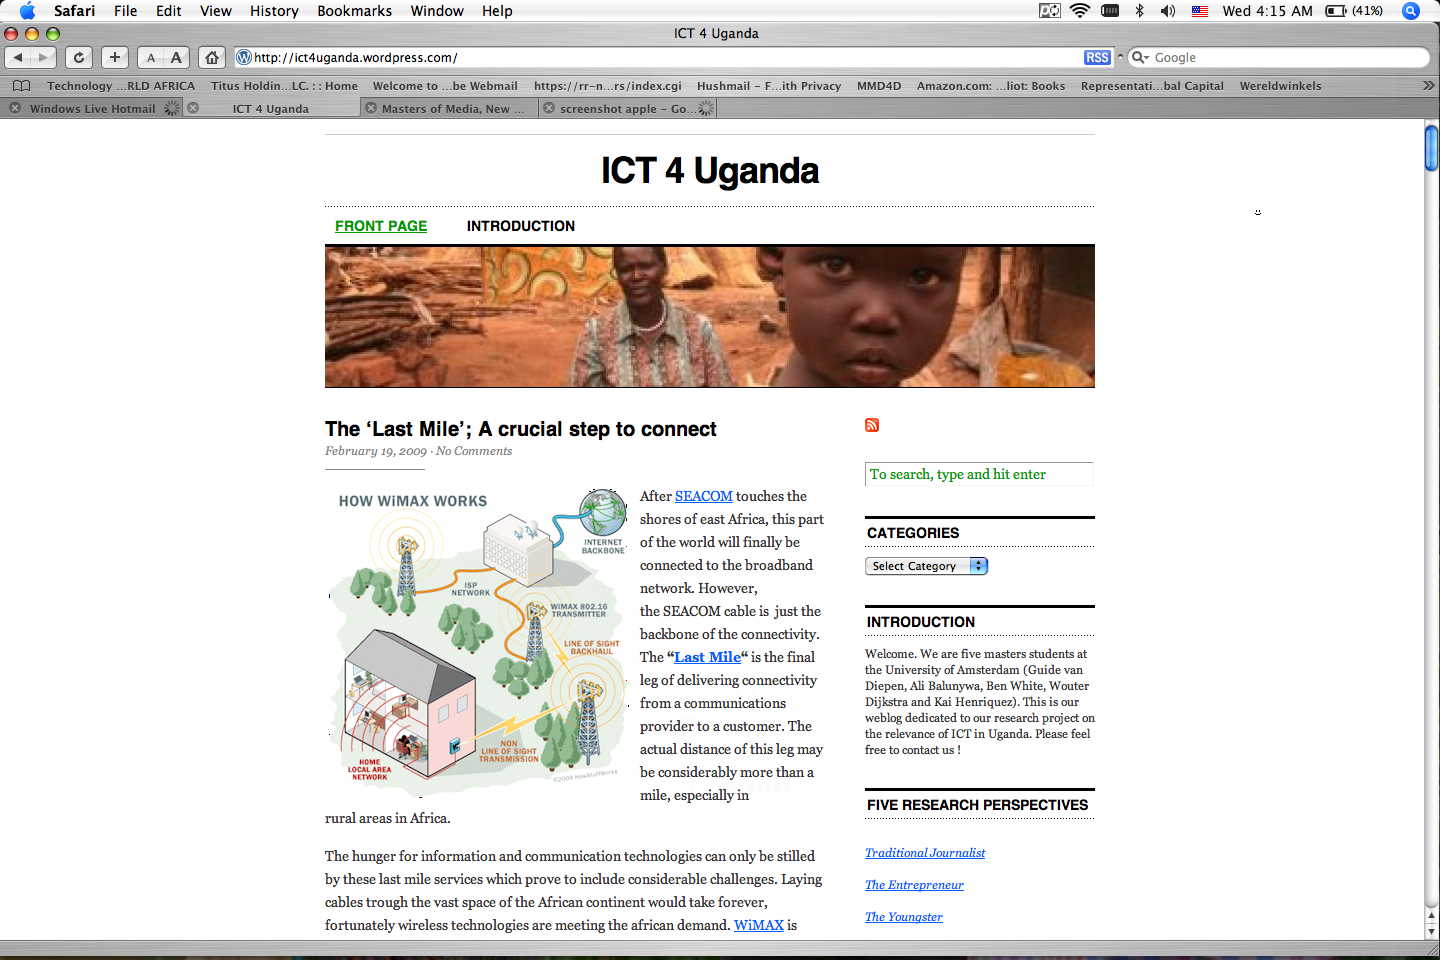 Research Project: ICT 4 Uganda